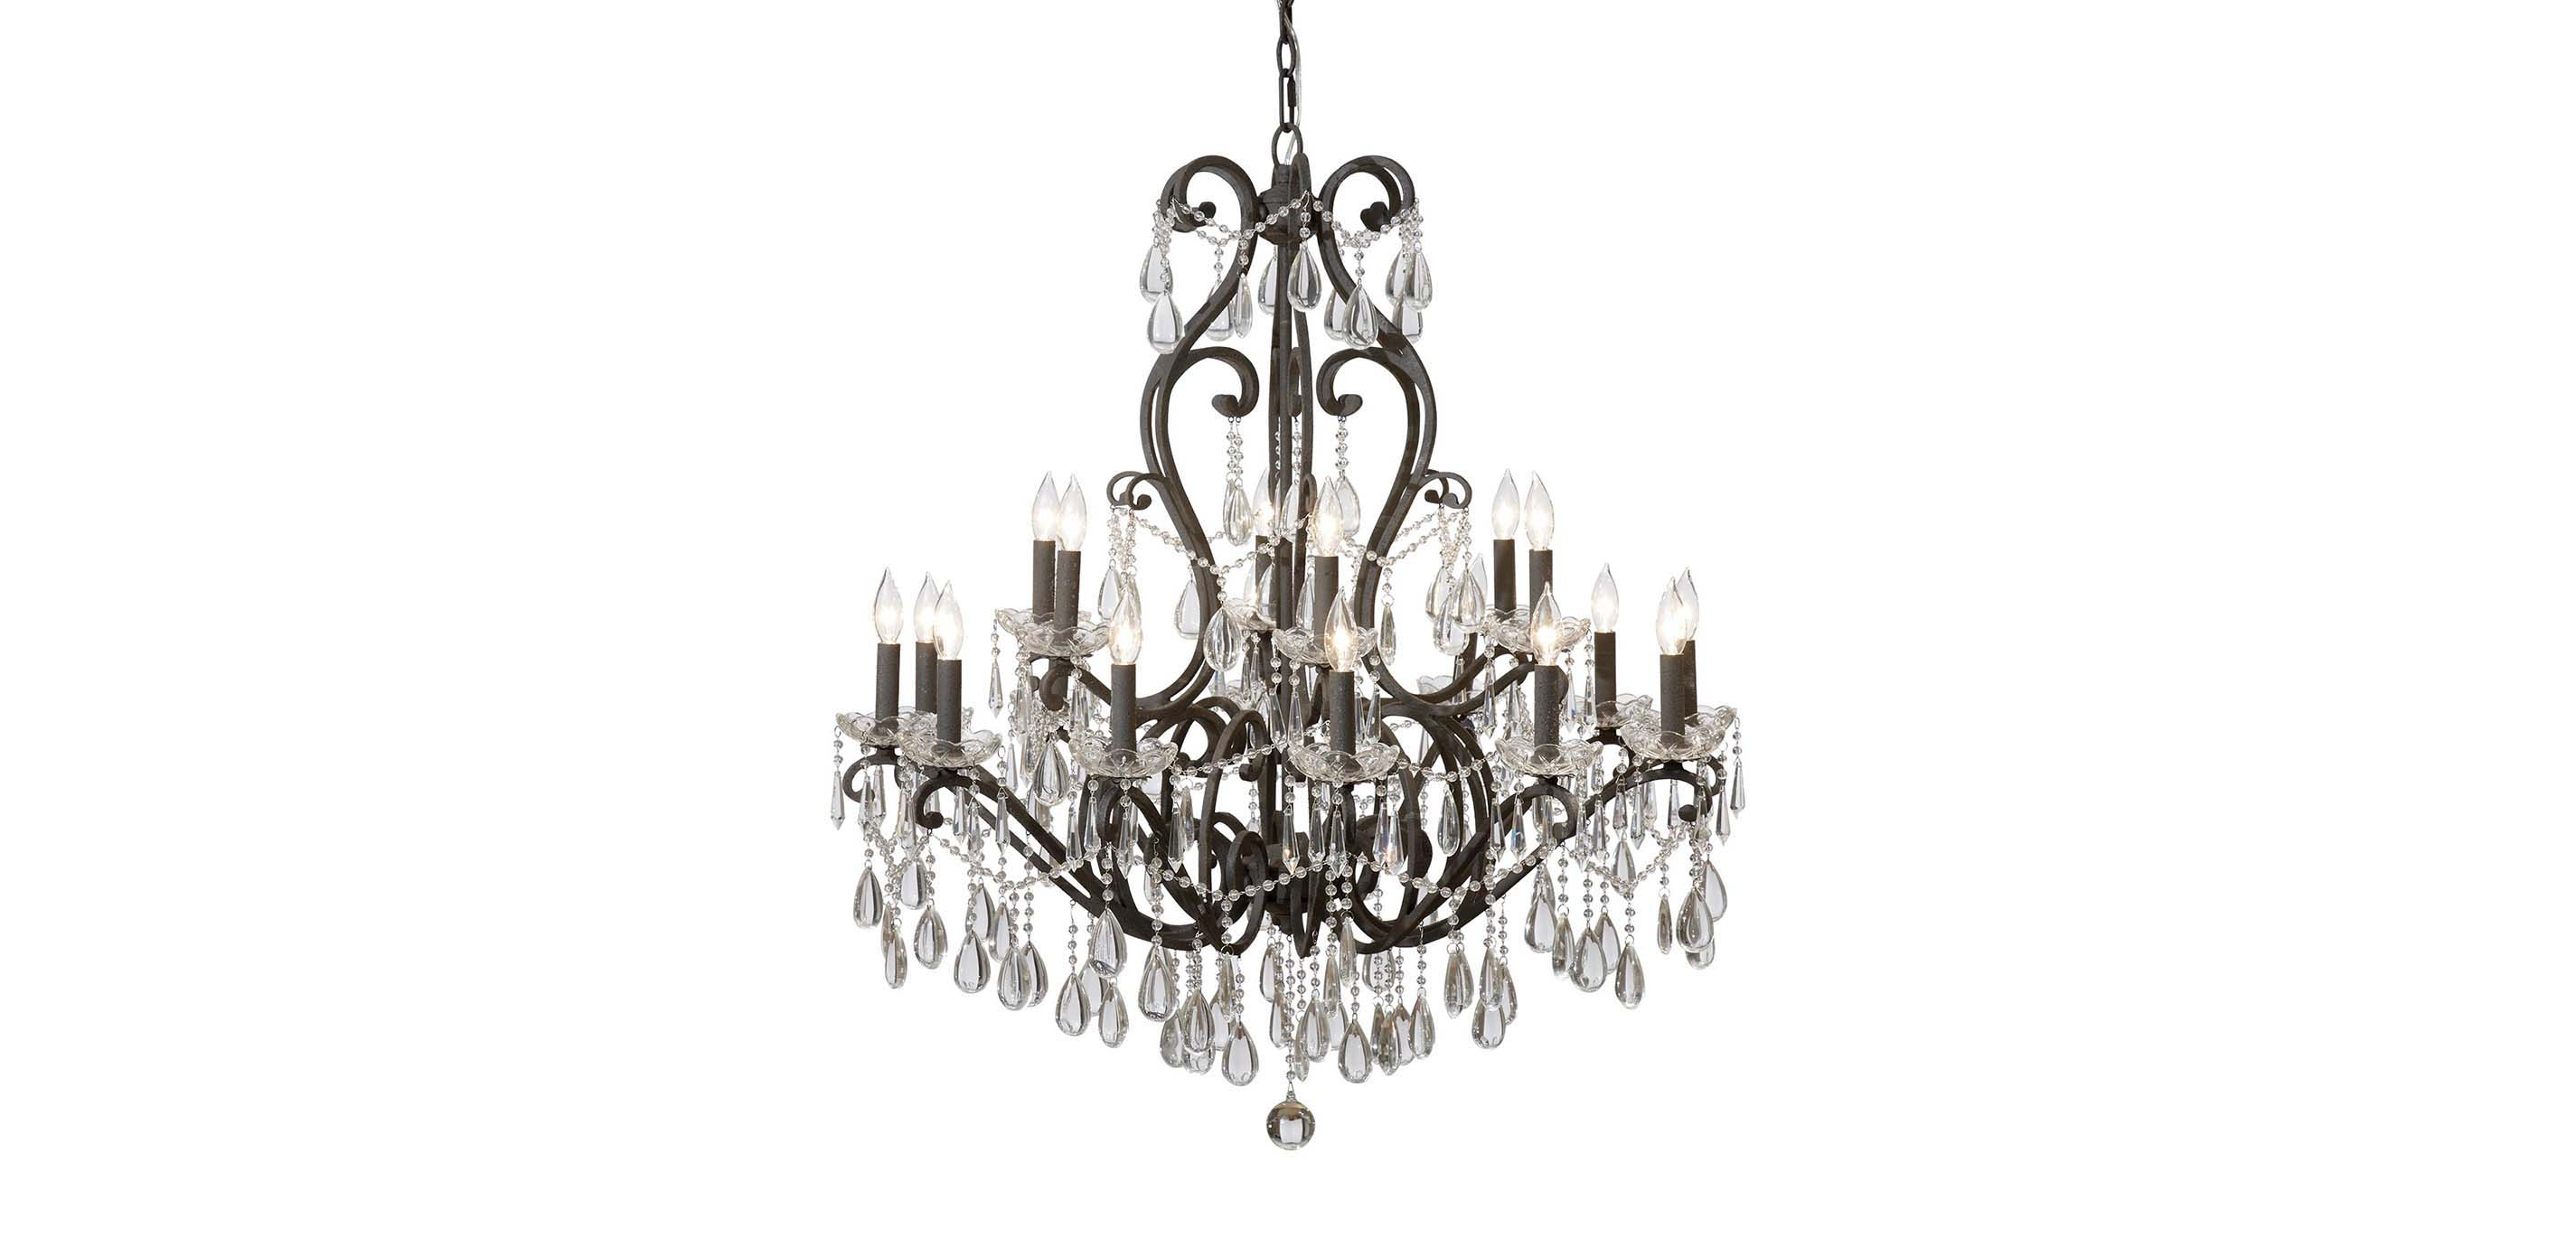 Whitney slate chandelier chandeliers ethan allen images whitney slate chandelier largegray arubaitofo Images